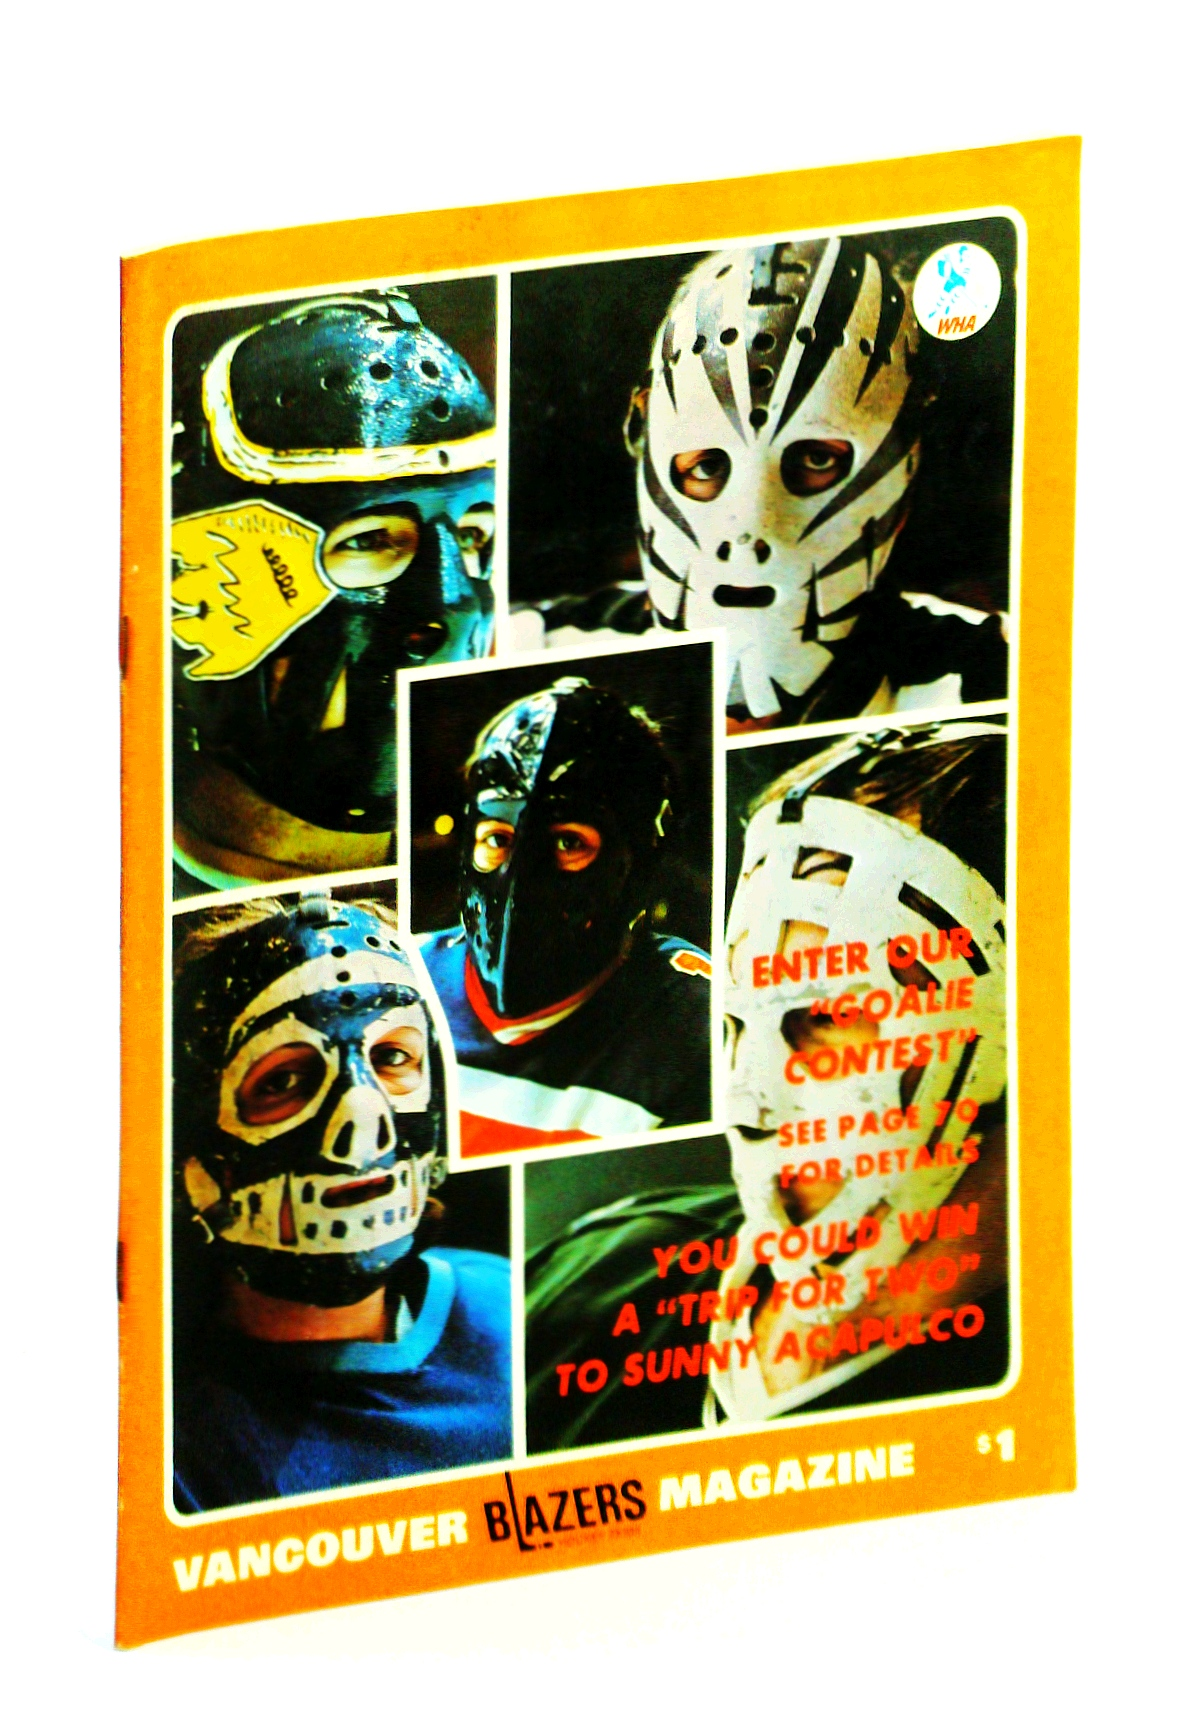 Image for Vancouver Blazers Magazine, Volume II, Issue No. 27, February 9, 1975 : Cover Photos of Colourful Goalie Masks